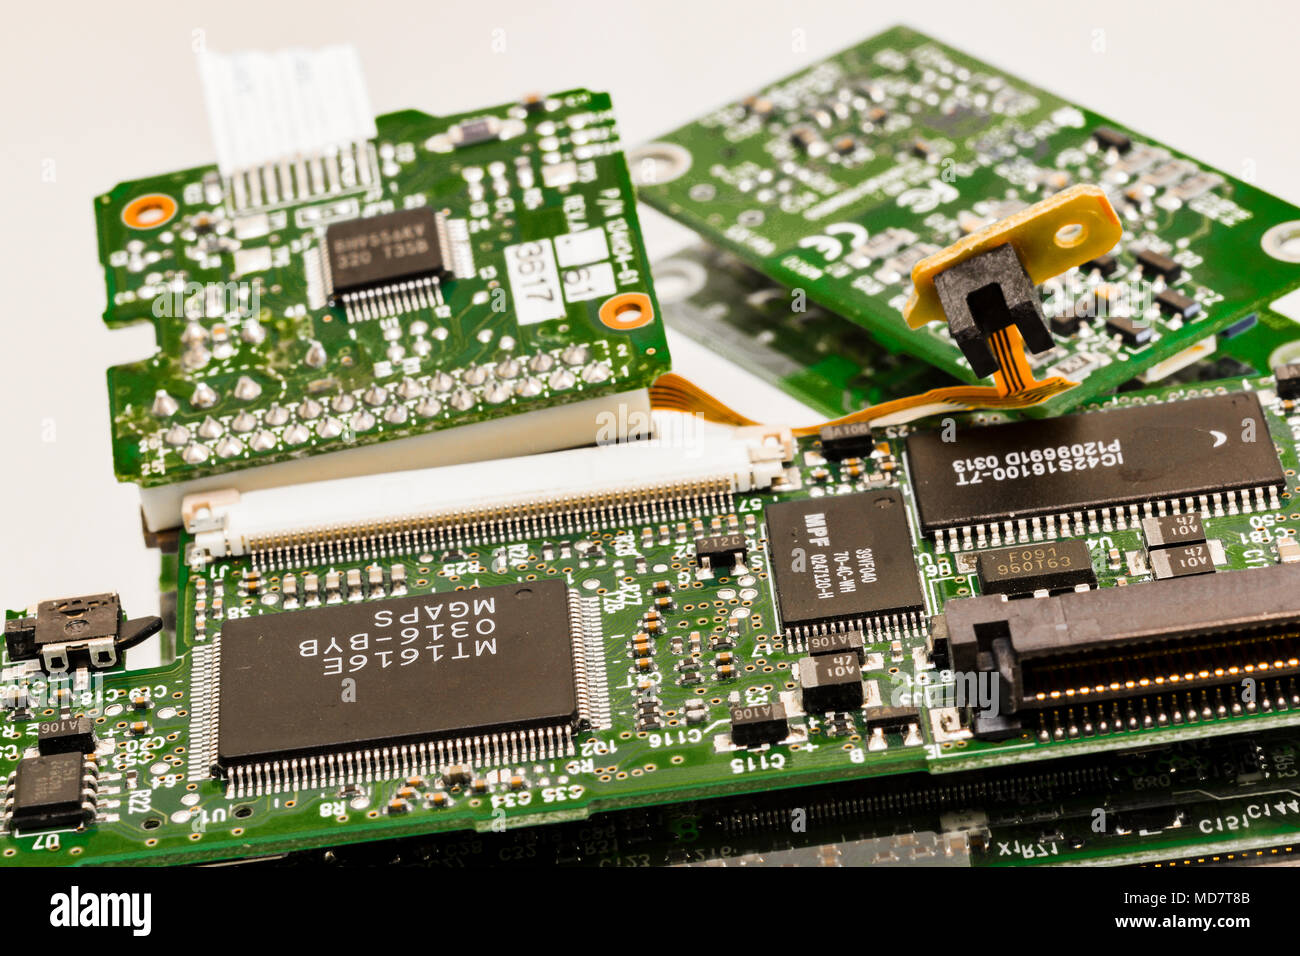 Computer components from a personal computer disc player - Stock Image